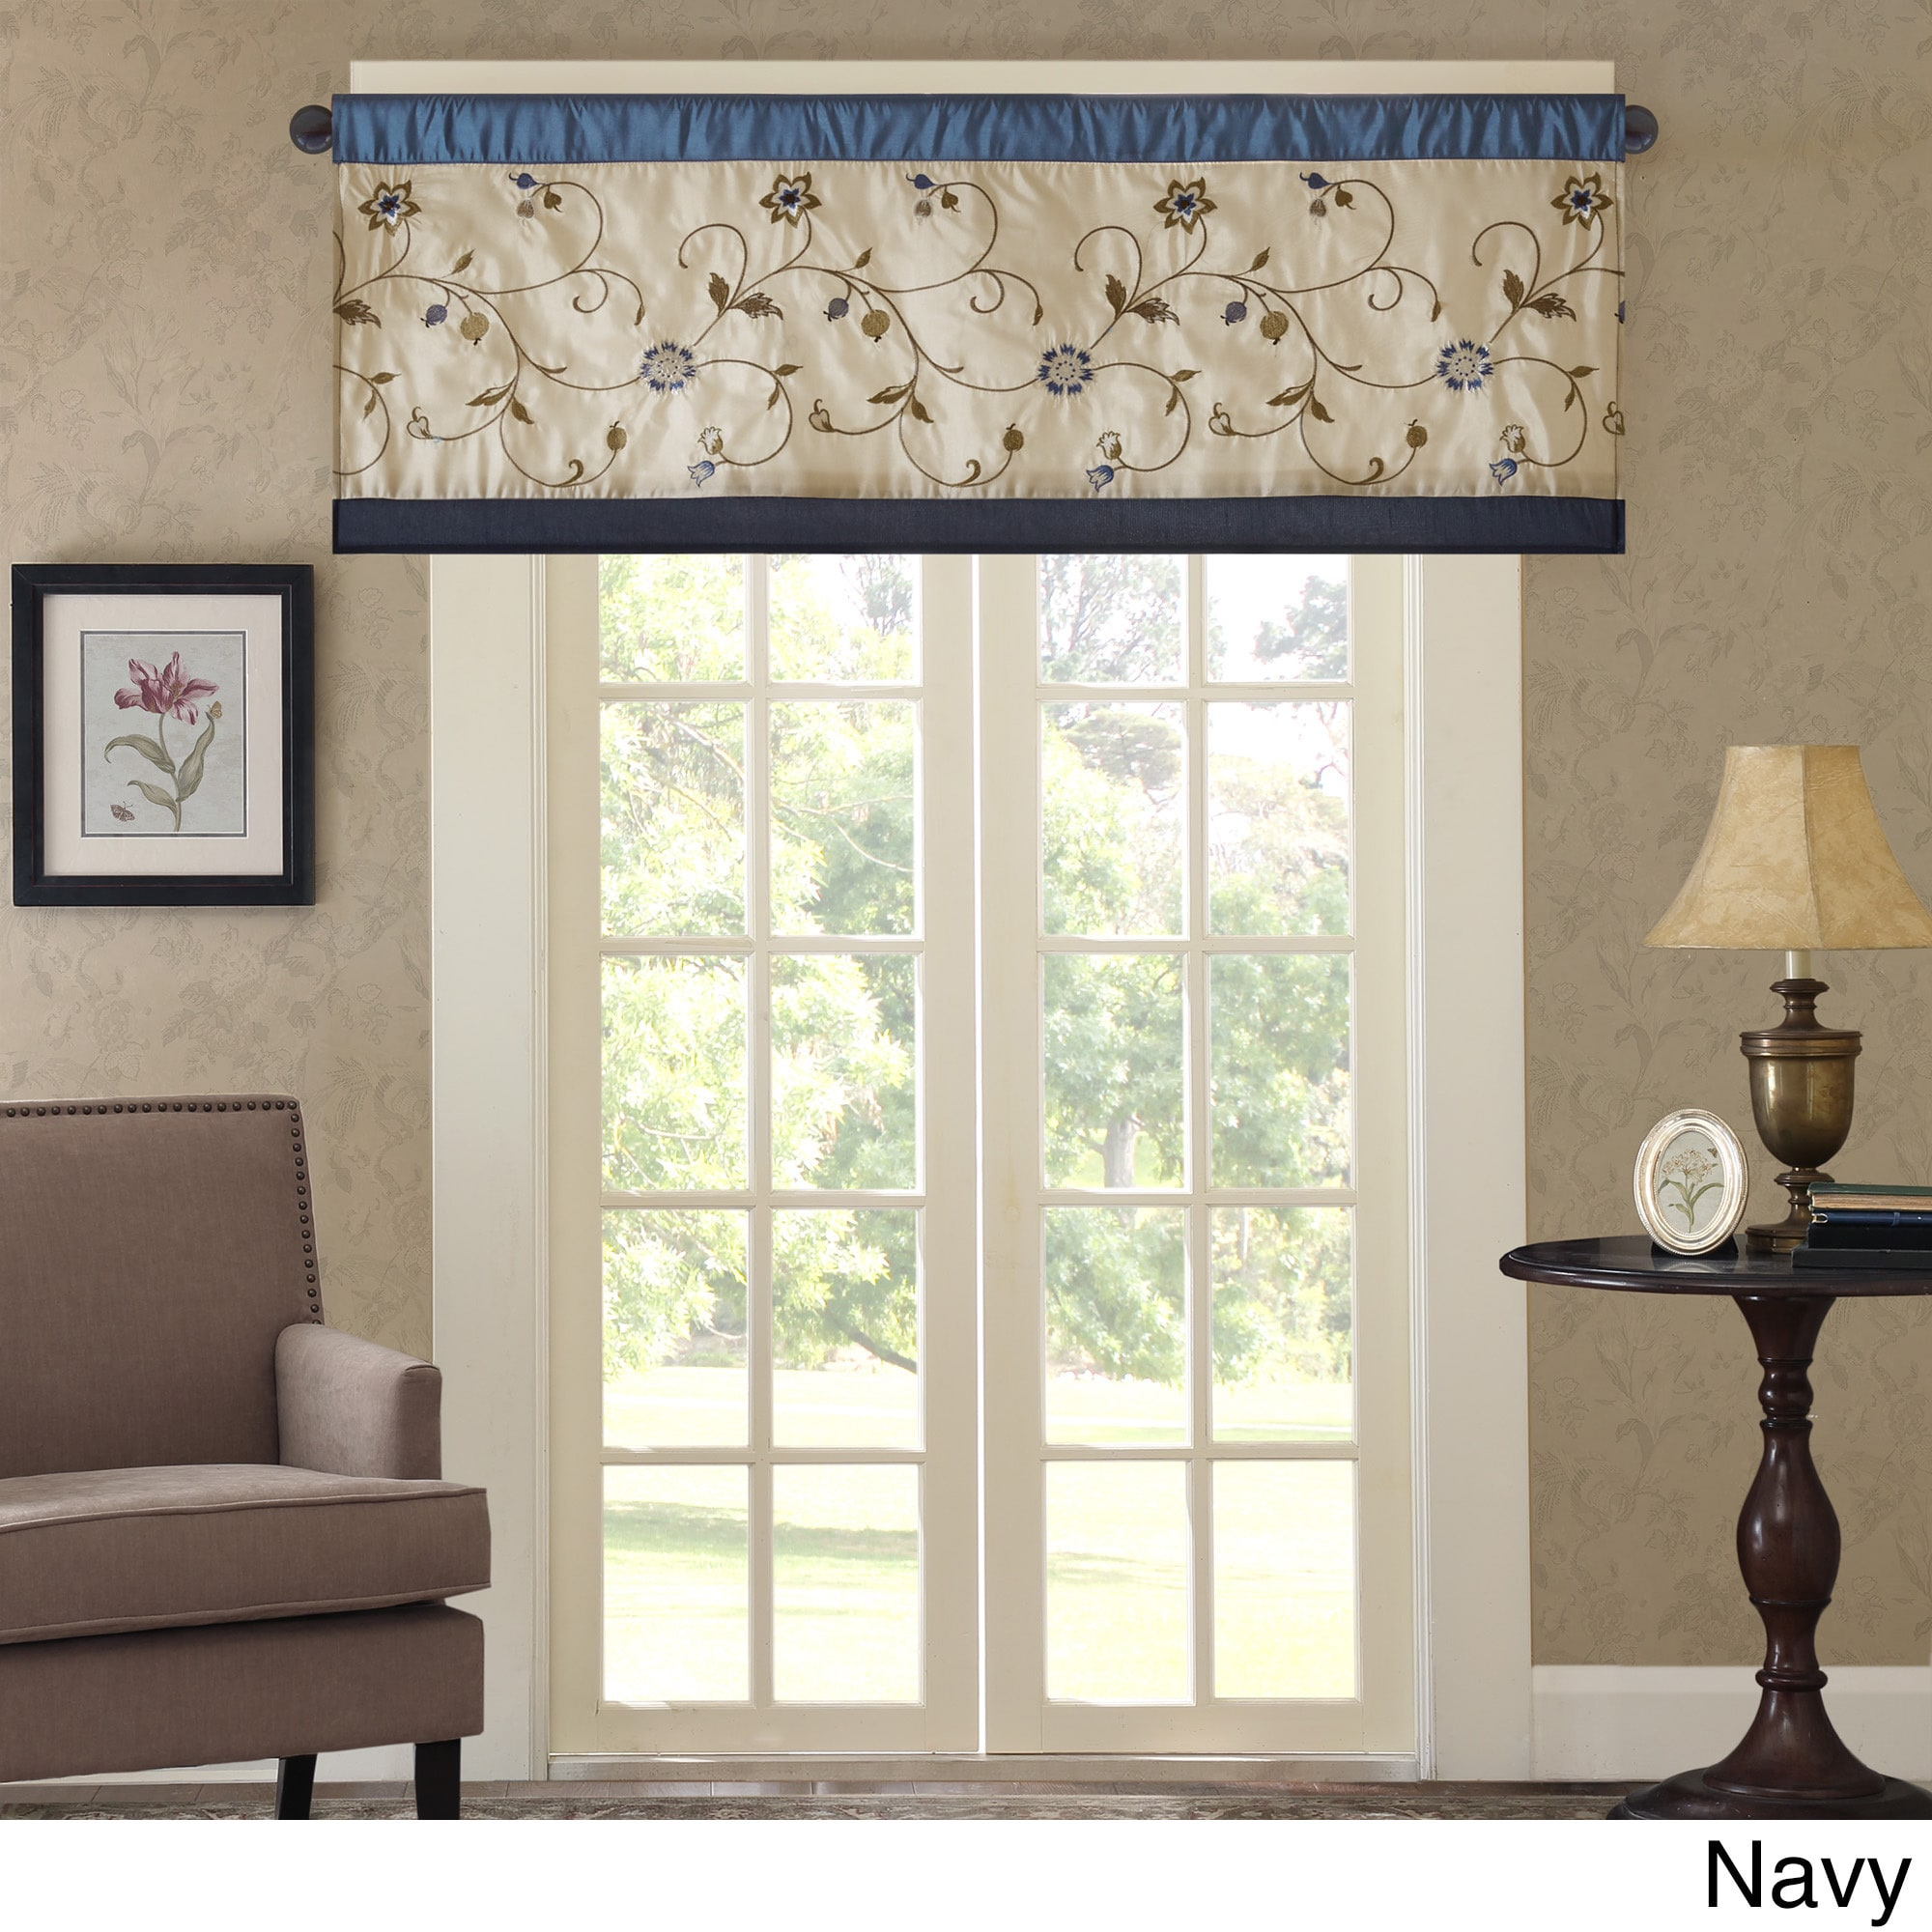 curtains sheer windows of valances ideas with bathroom valance double swag curtain shower window for white brilliant gallery treatments